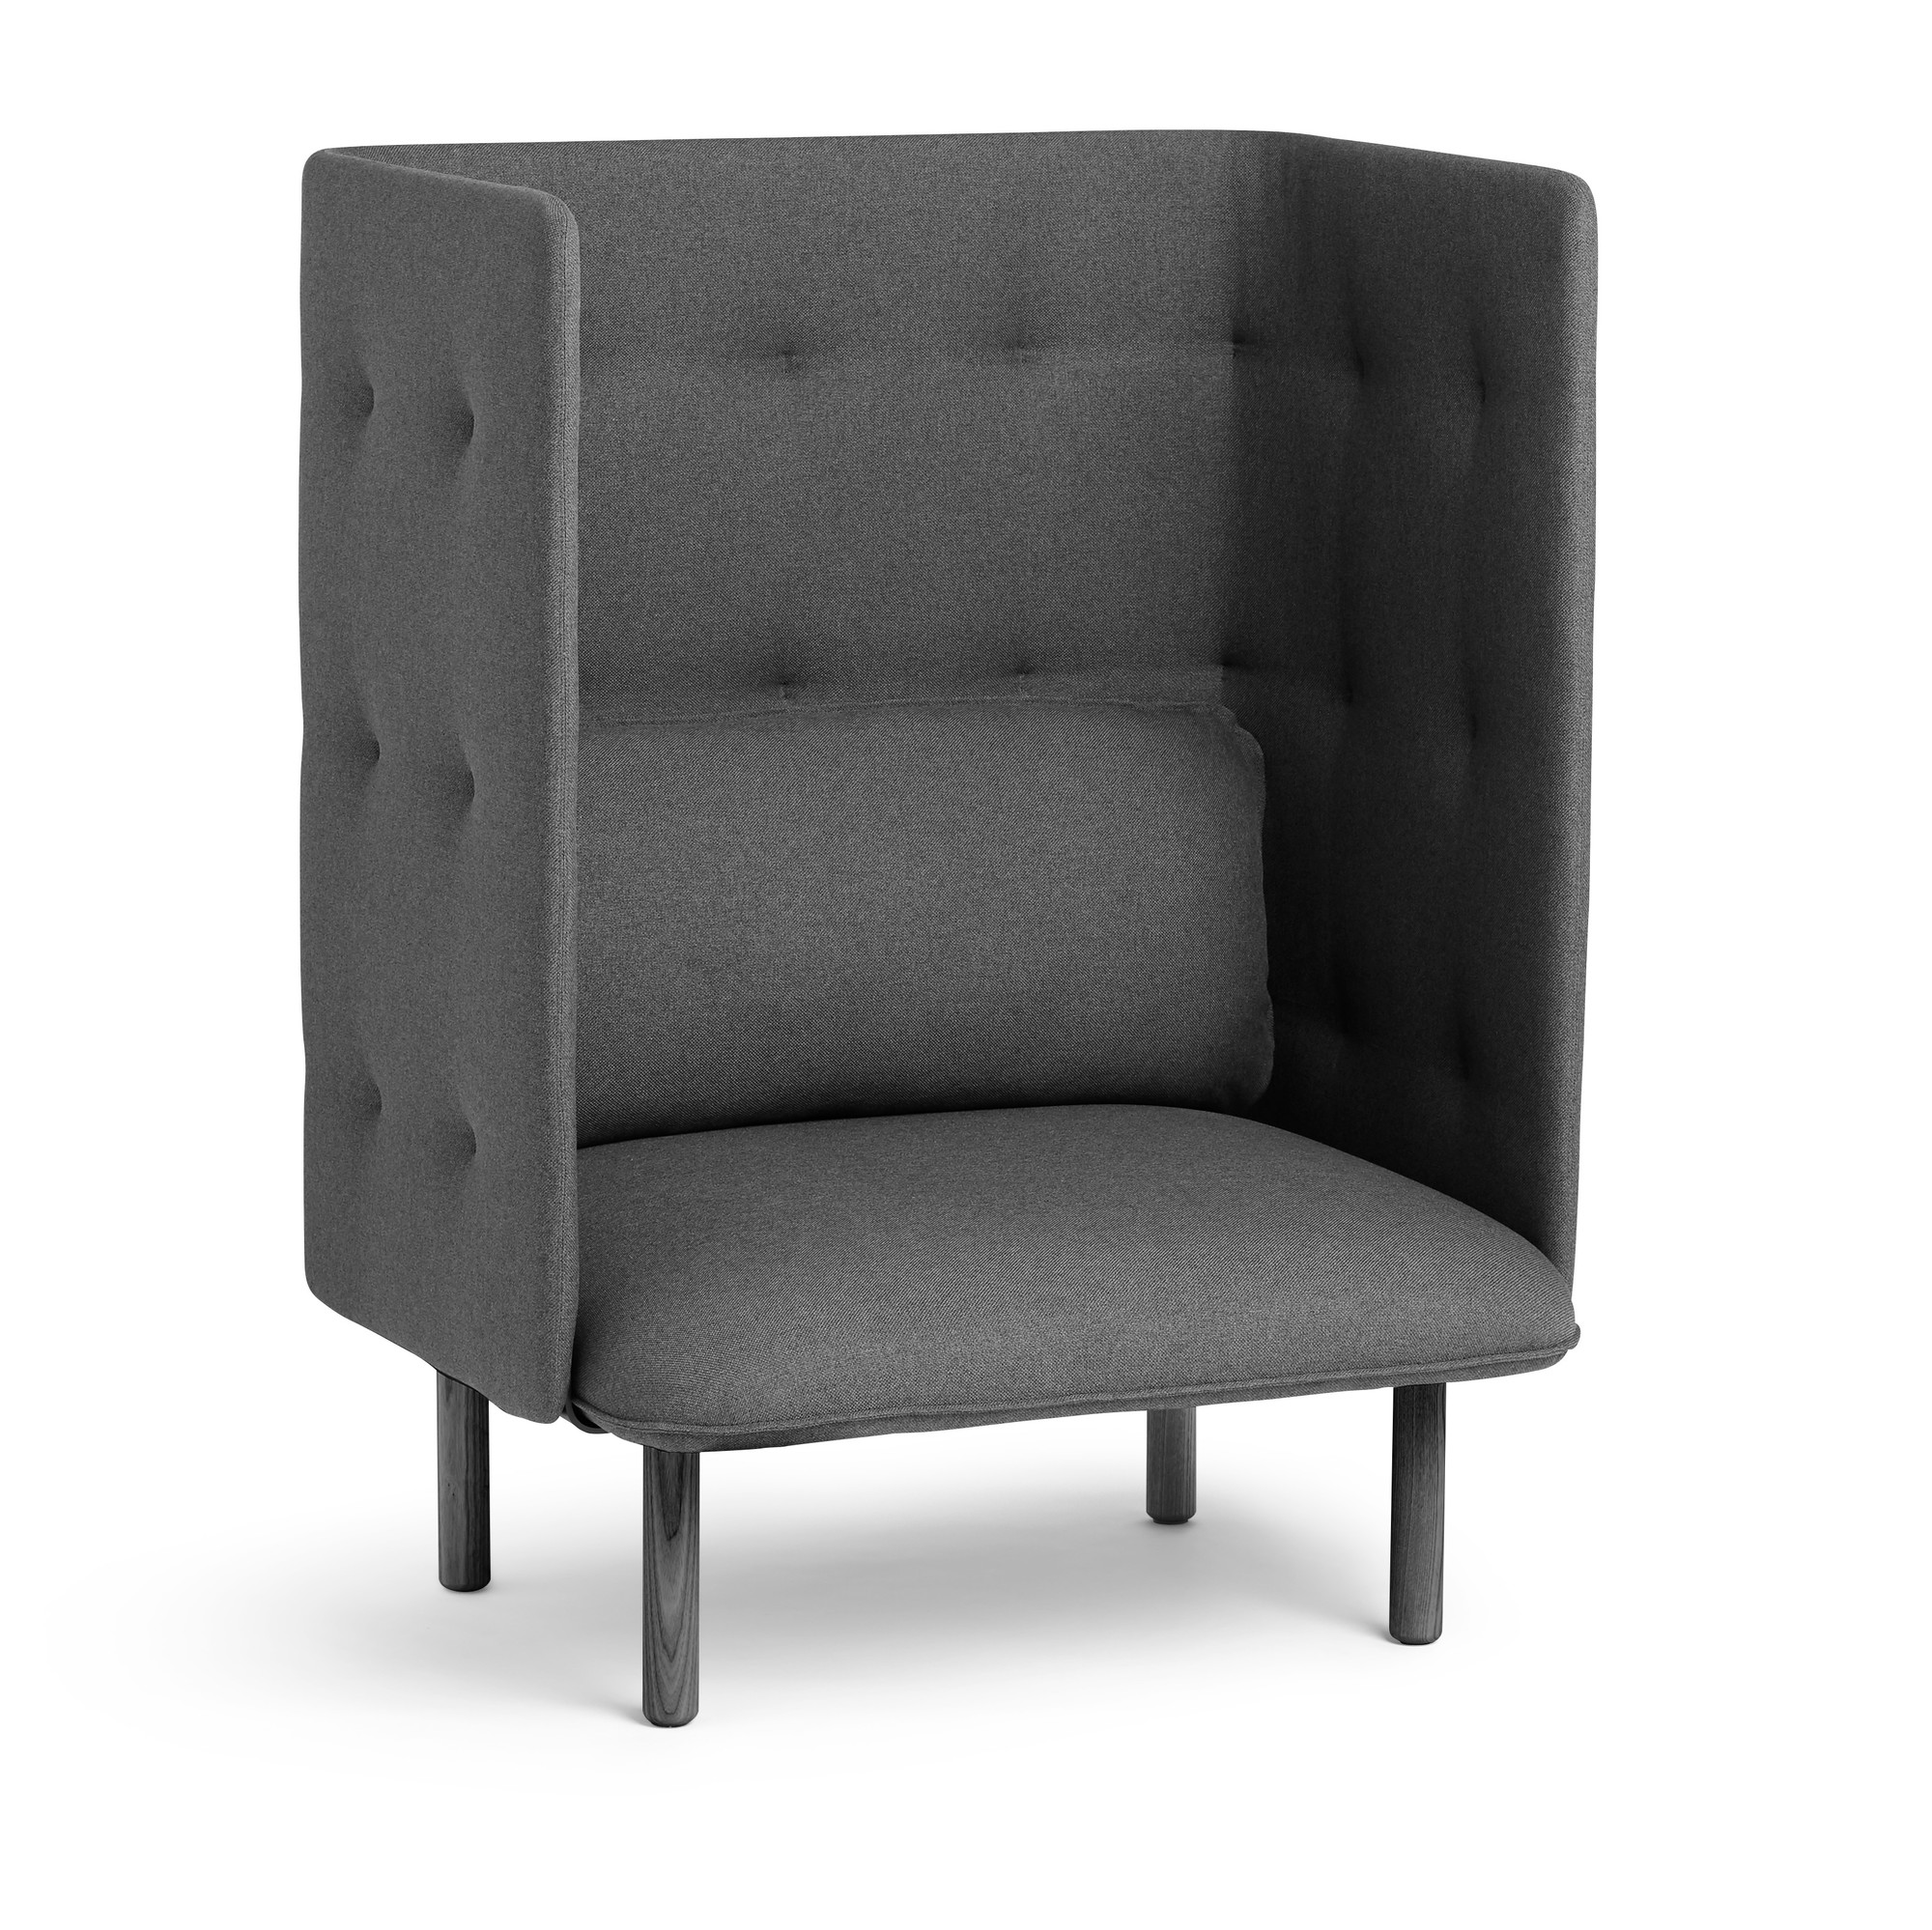 Lounge Chair Dark Gray Qt Privacy Lounge Chair Privacy Lounge Seating Poppin